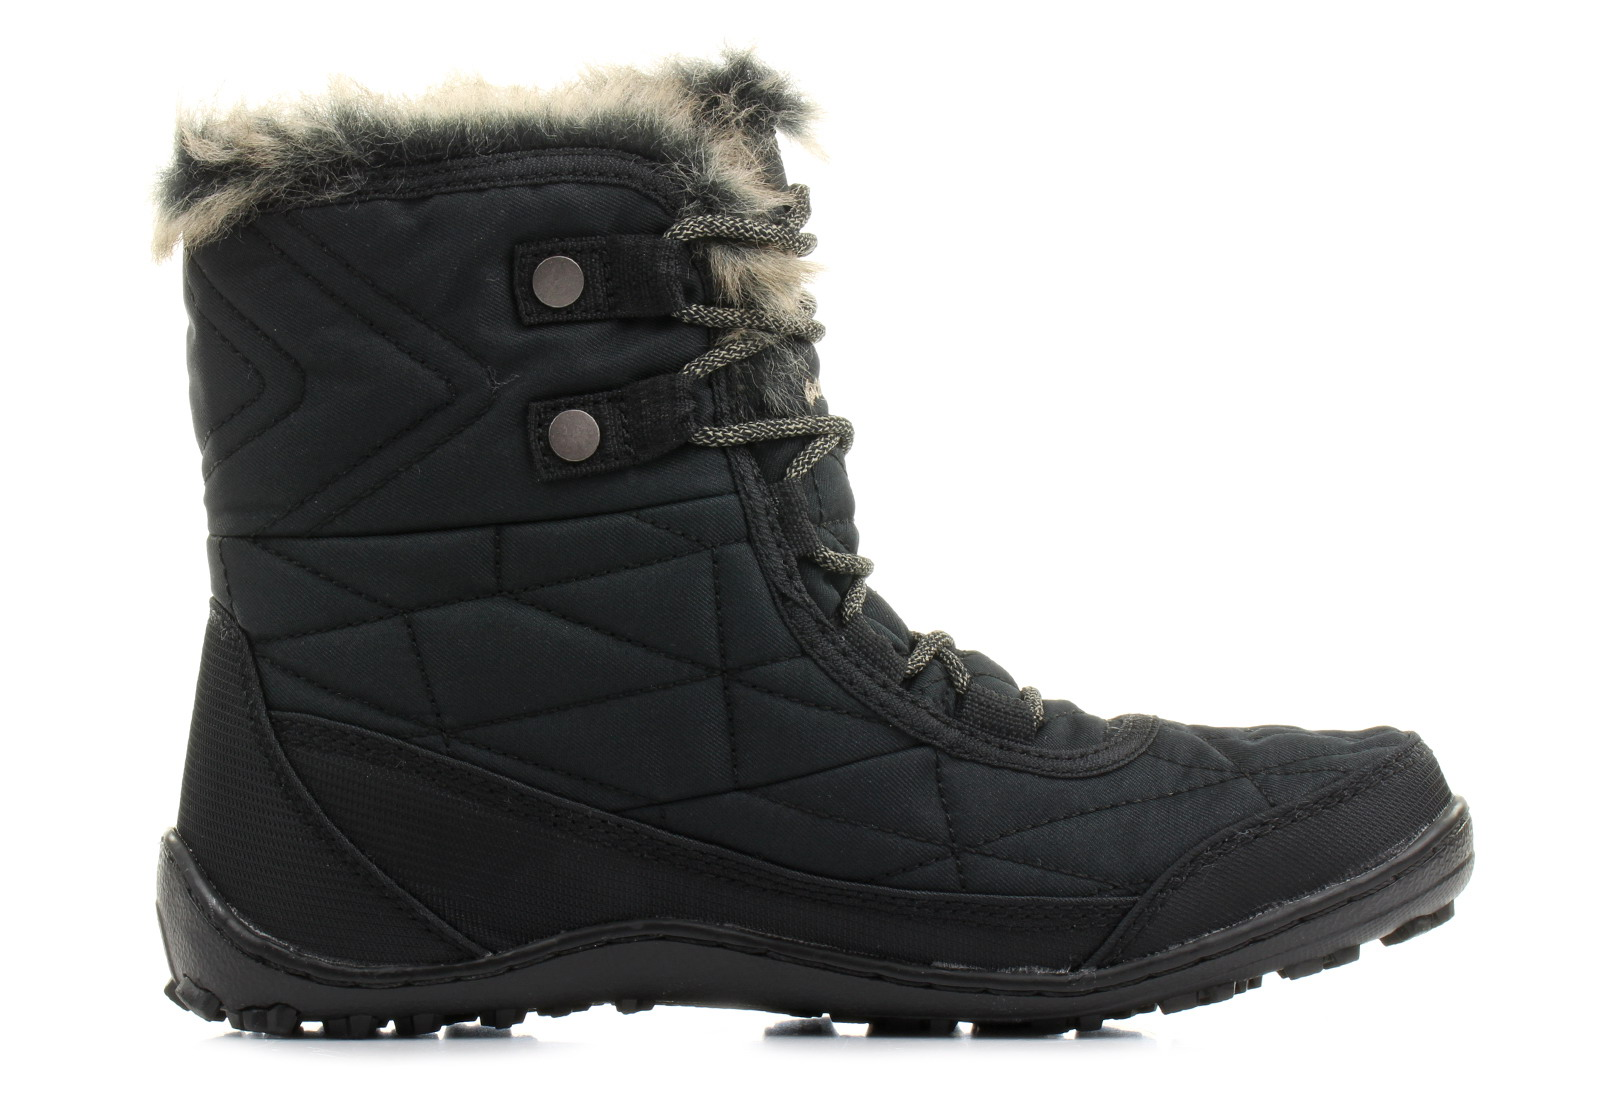 Columbia Boots - Minx Shorty Iii - 1803151-blk - Online shop for ... 9936bb9702